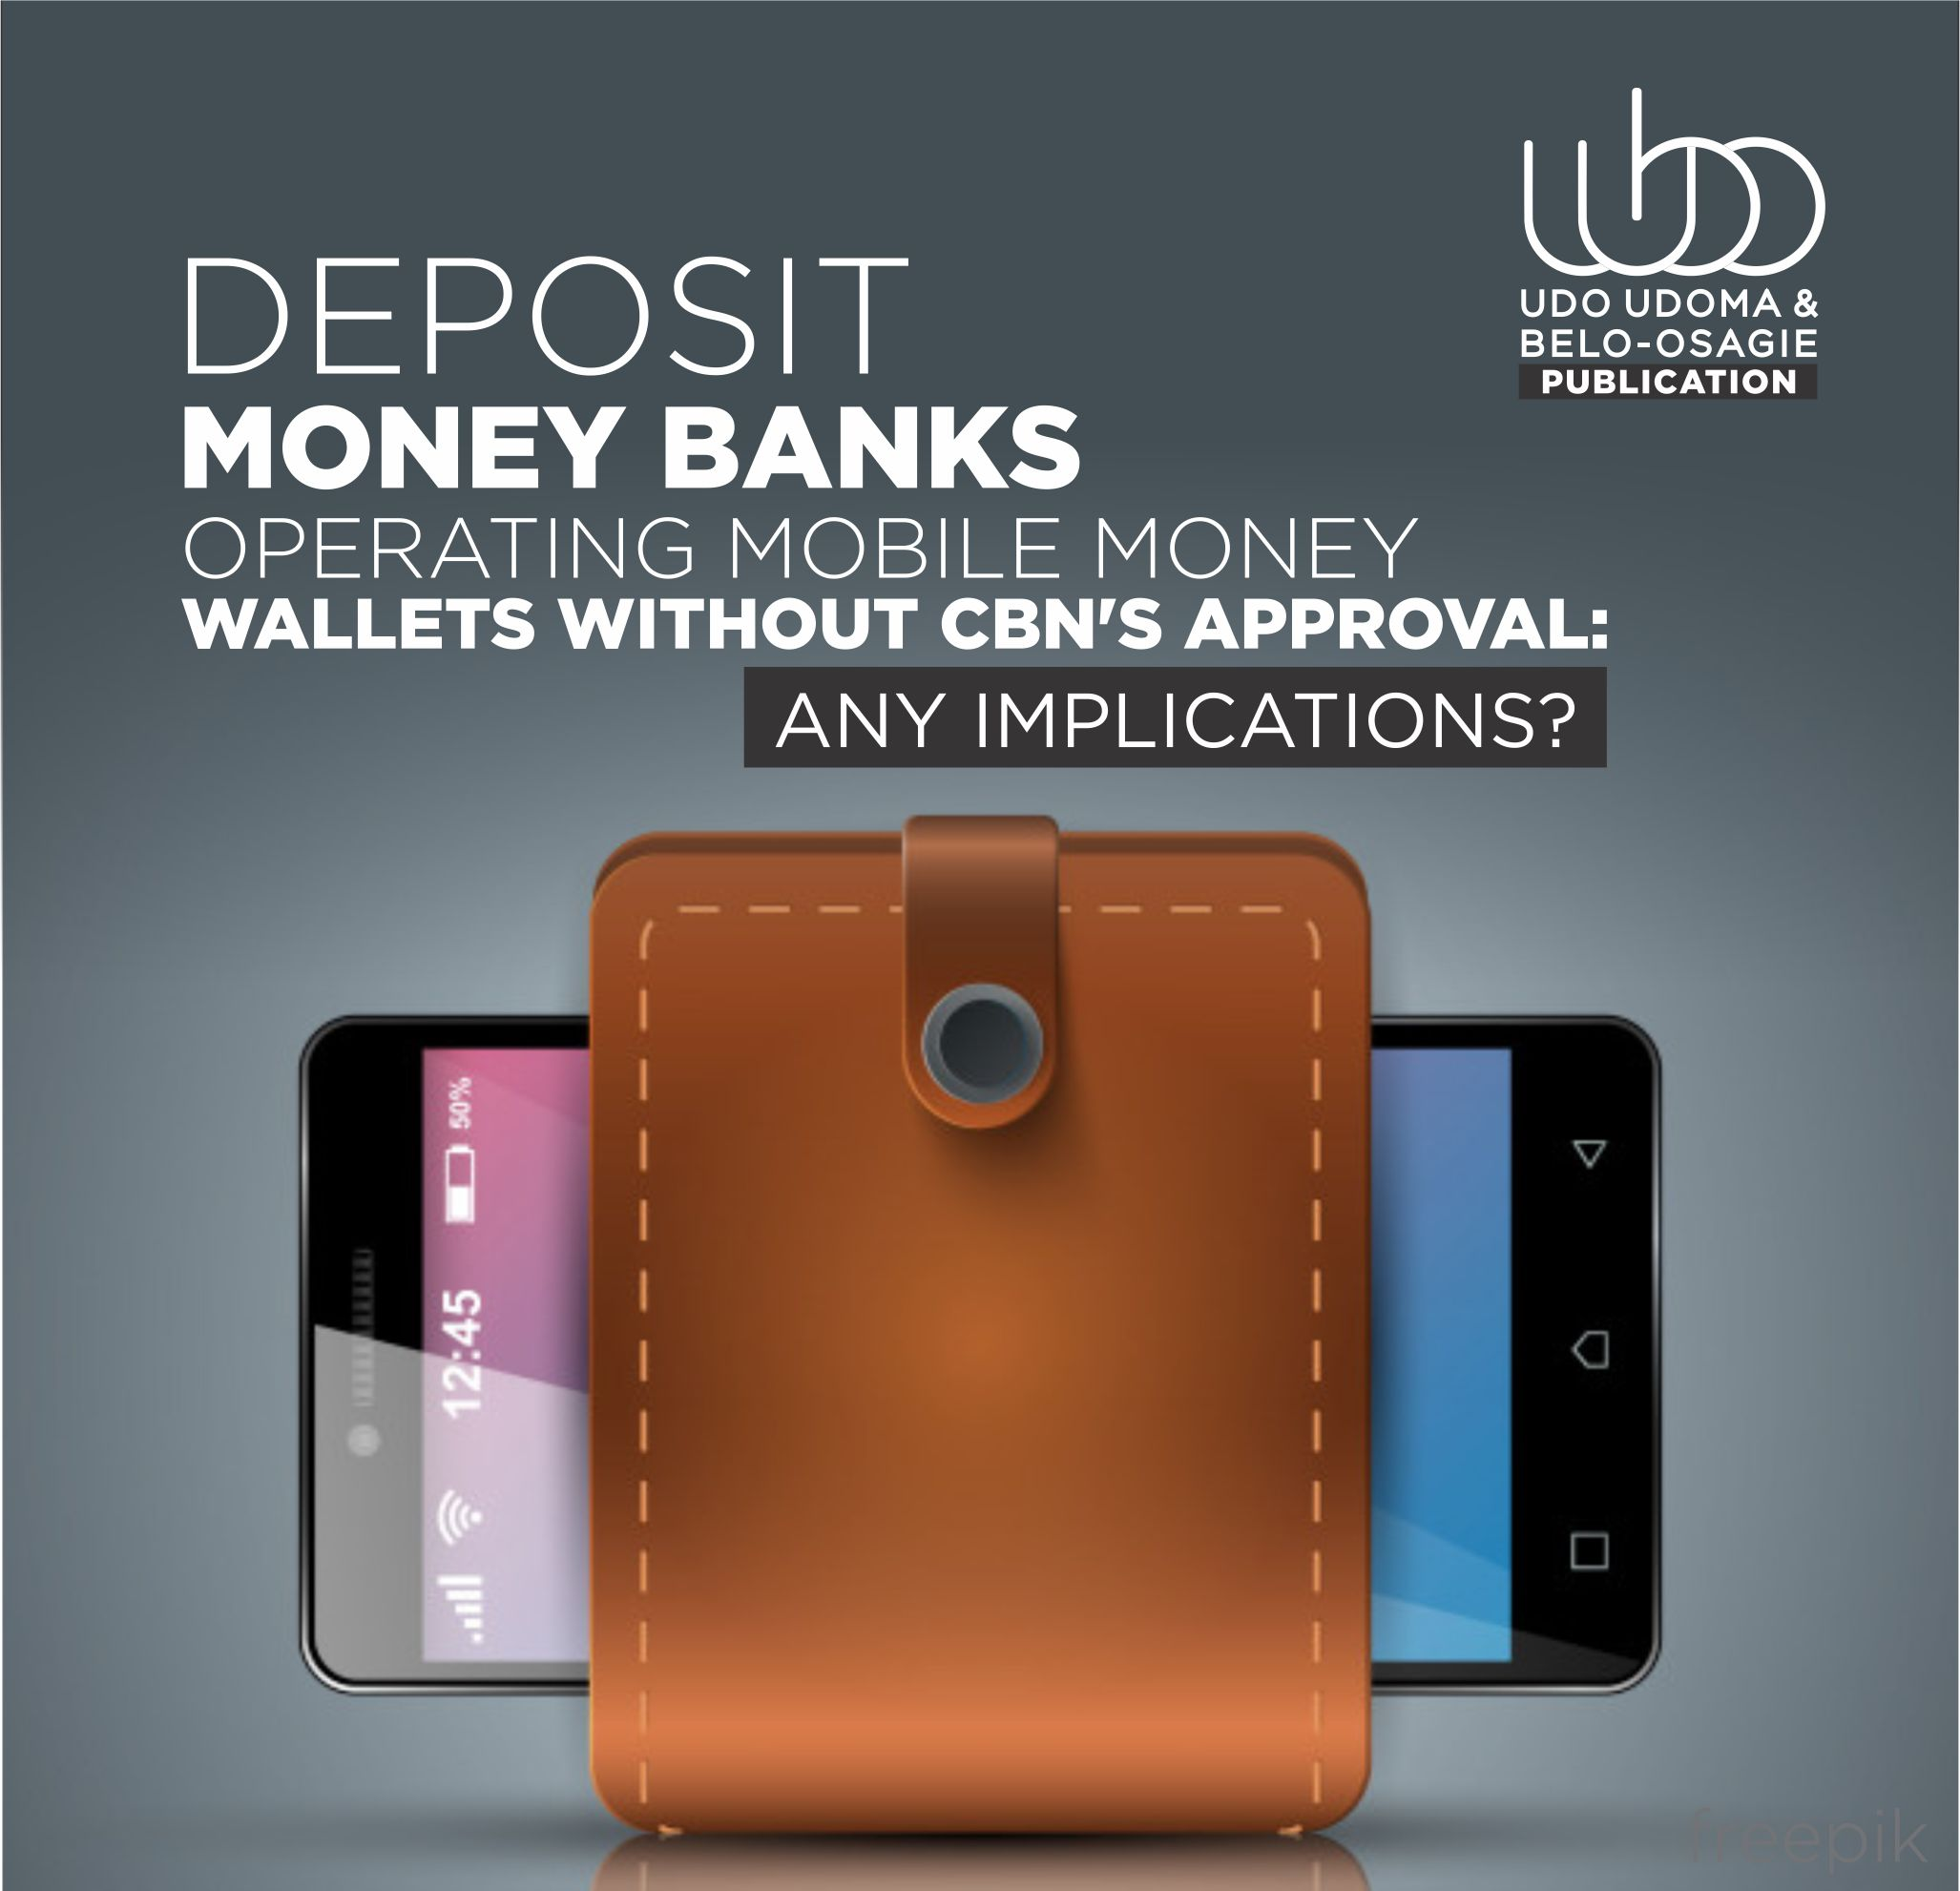 DEPOSIT MONEY BANKS OPERATING MOBILE MONEY WALLETS WITHOUT CBN'S APPROVAL: ANY IMPLICATIONS?